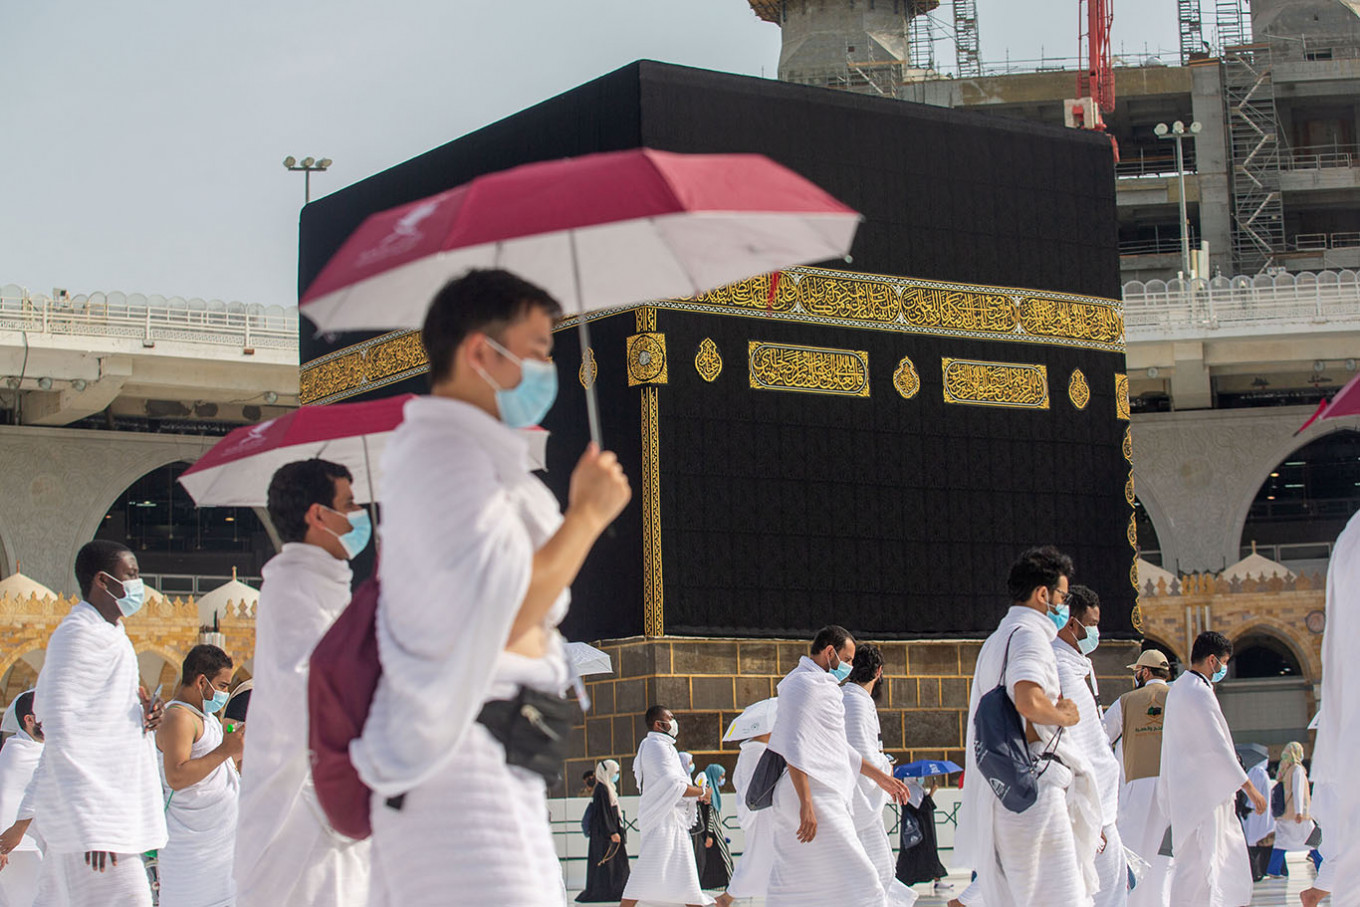 Indonesia drafts 'umrah' protocols as Saudi Arabia plans to reopen to pilgrims